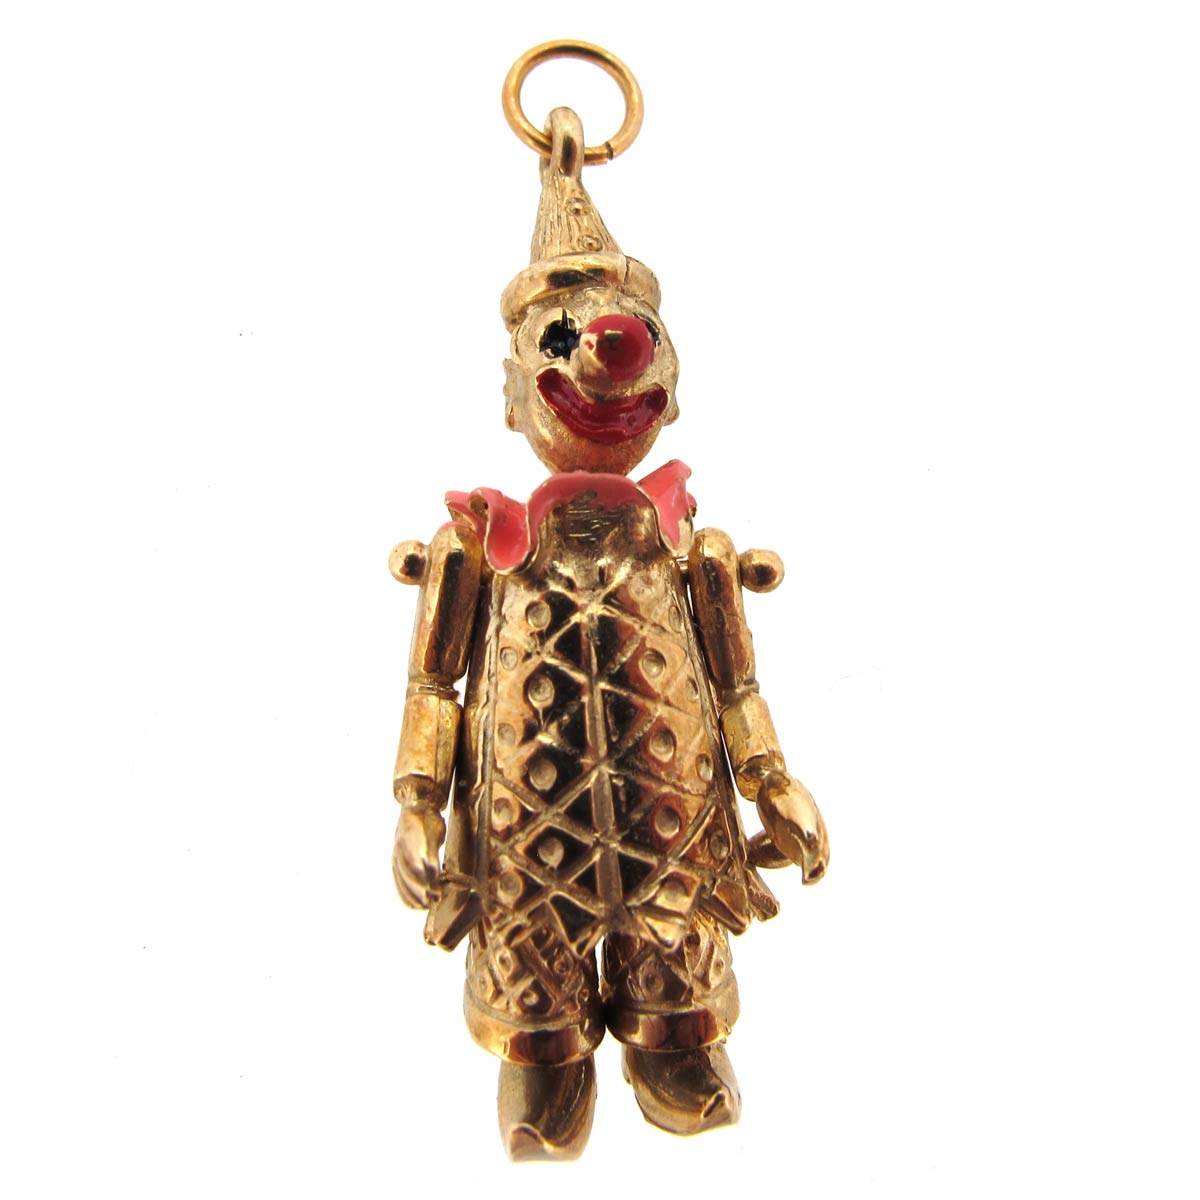 Gold & Enamel Clown Charm